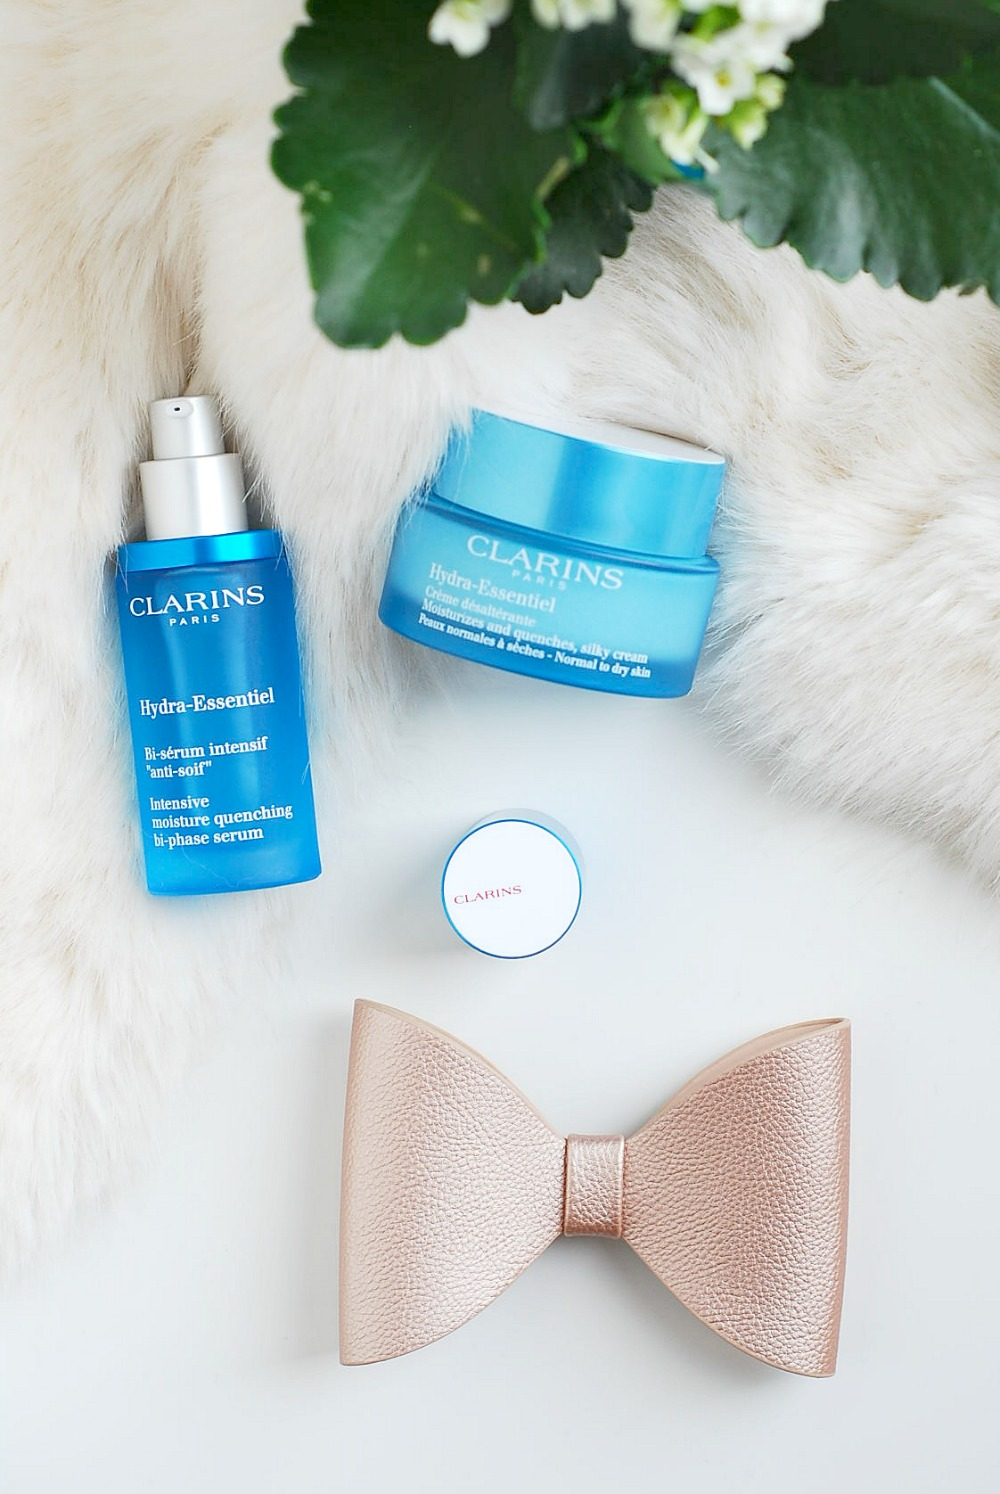 Clarins Hydra-Essentiel range review